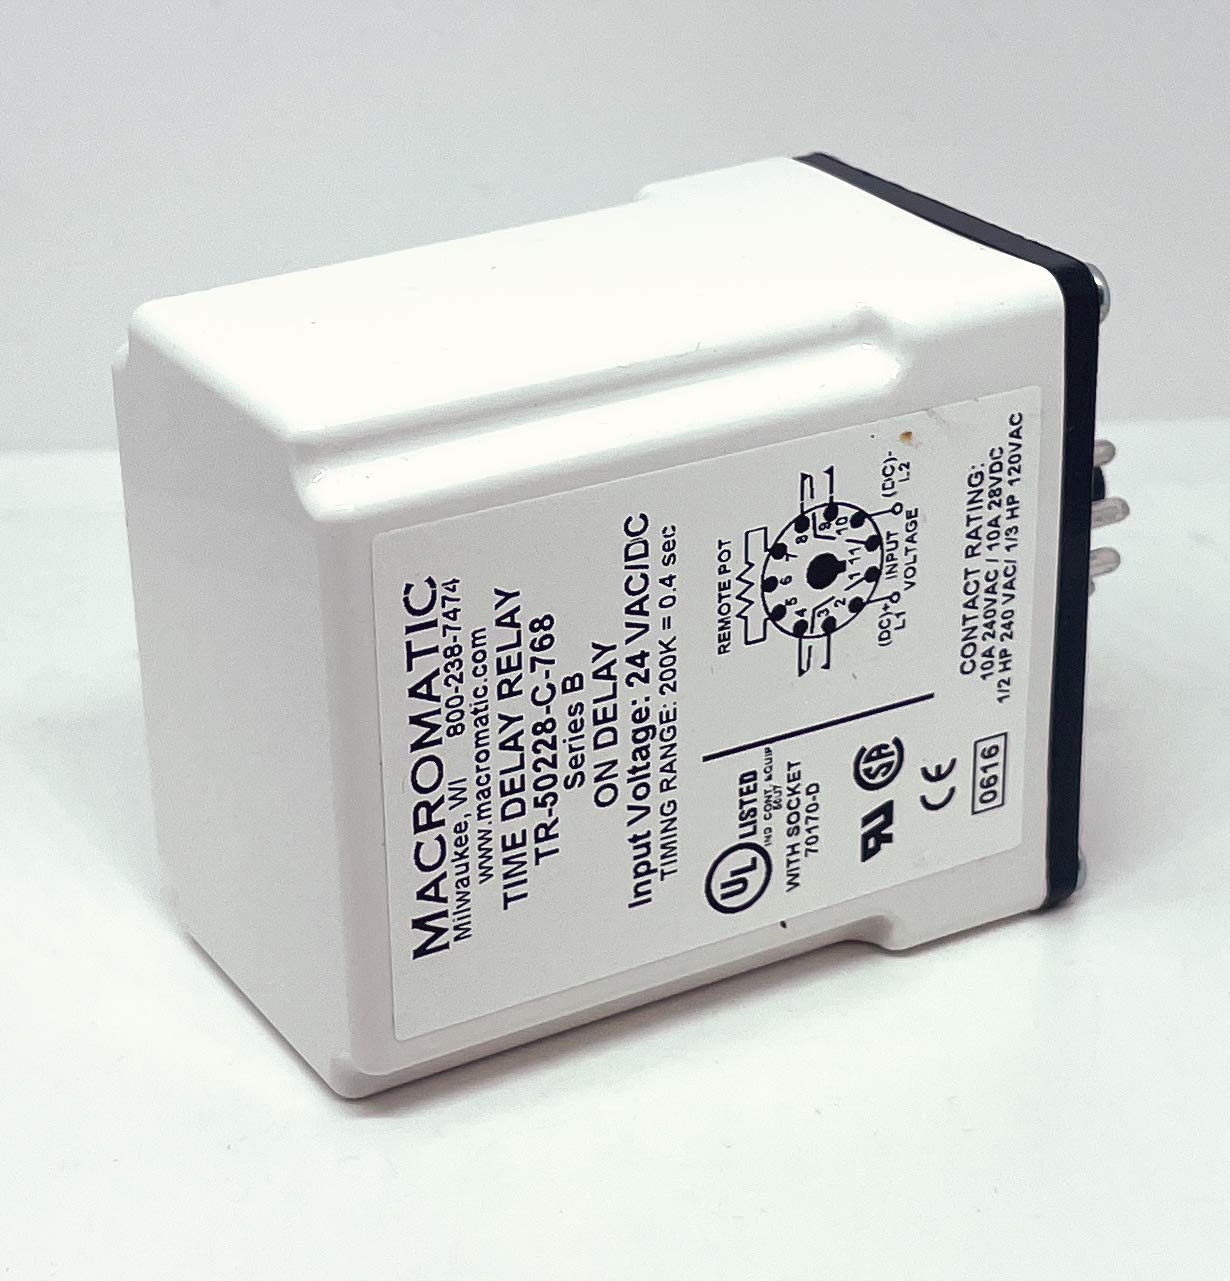 MACROMATIC Max 87% OFF Outlet ☆ Free Shipping TIME DELAY Relay